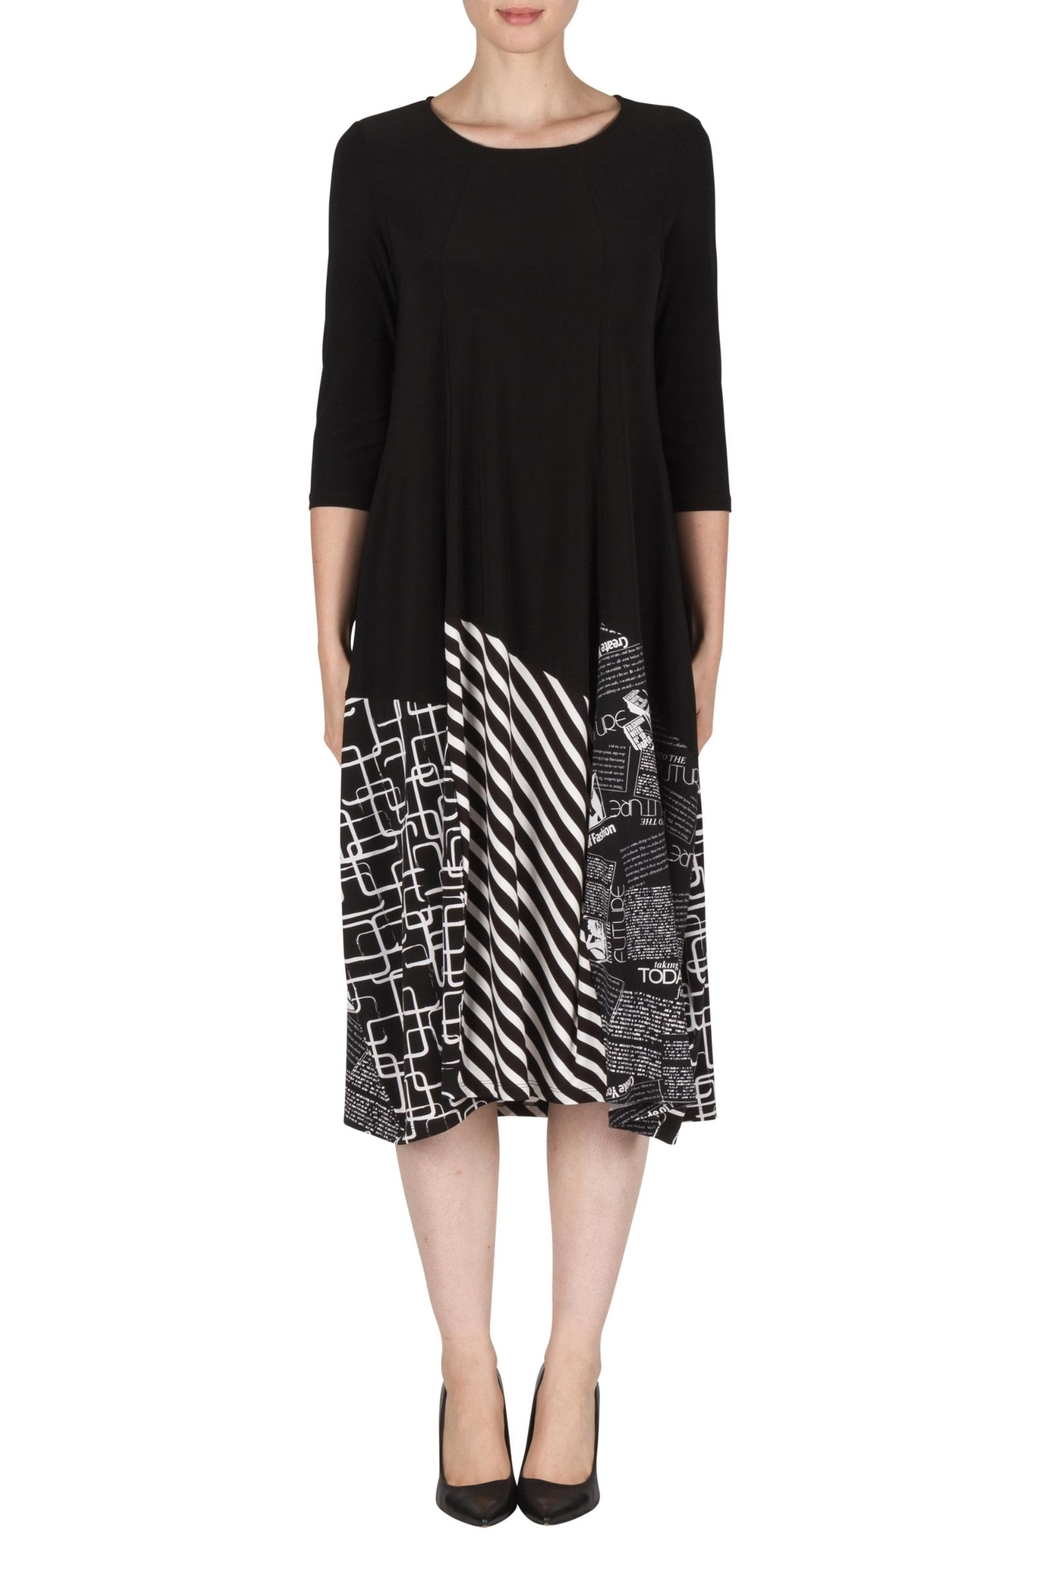 Joseph Ribkoff Eclectic Print Dress - Main Image